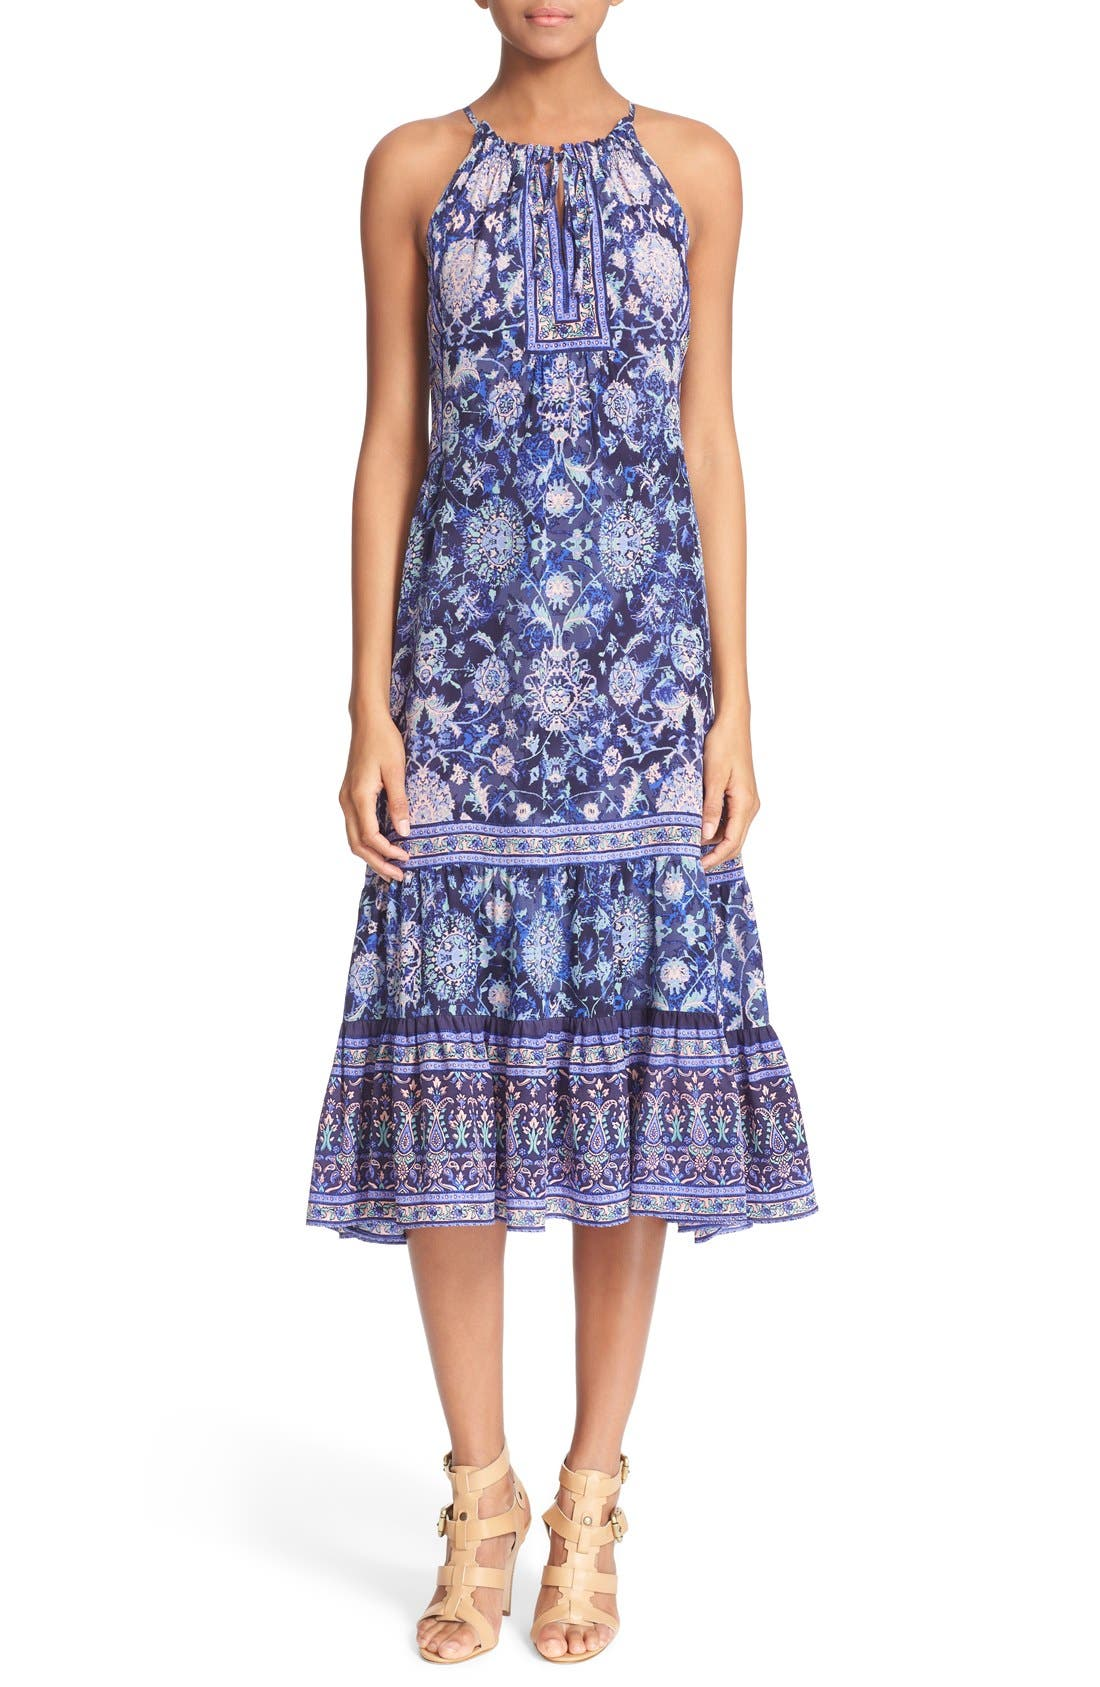 Alternate Image 1 Selected - Rebecca Taylor 'Dreamweaver' Print Silk Midi Dress